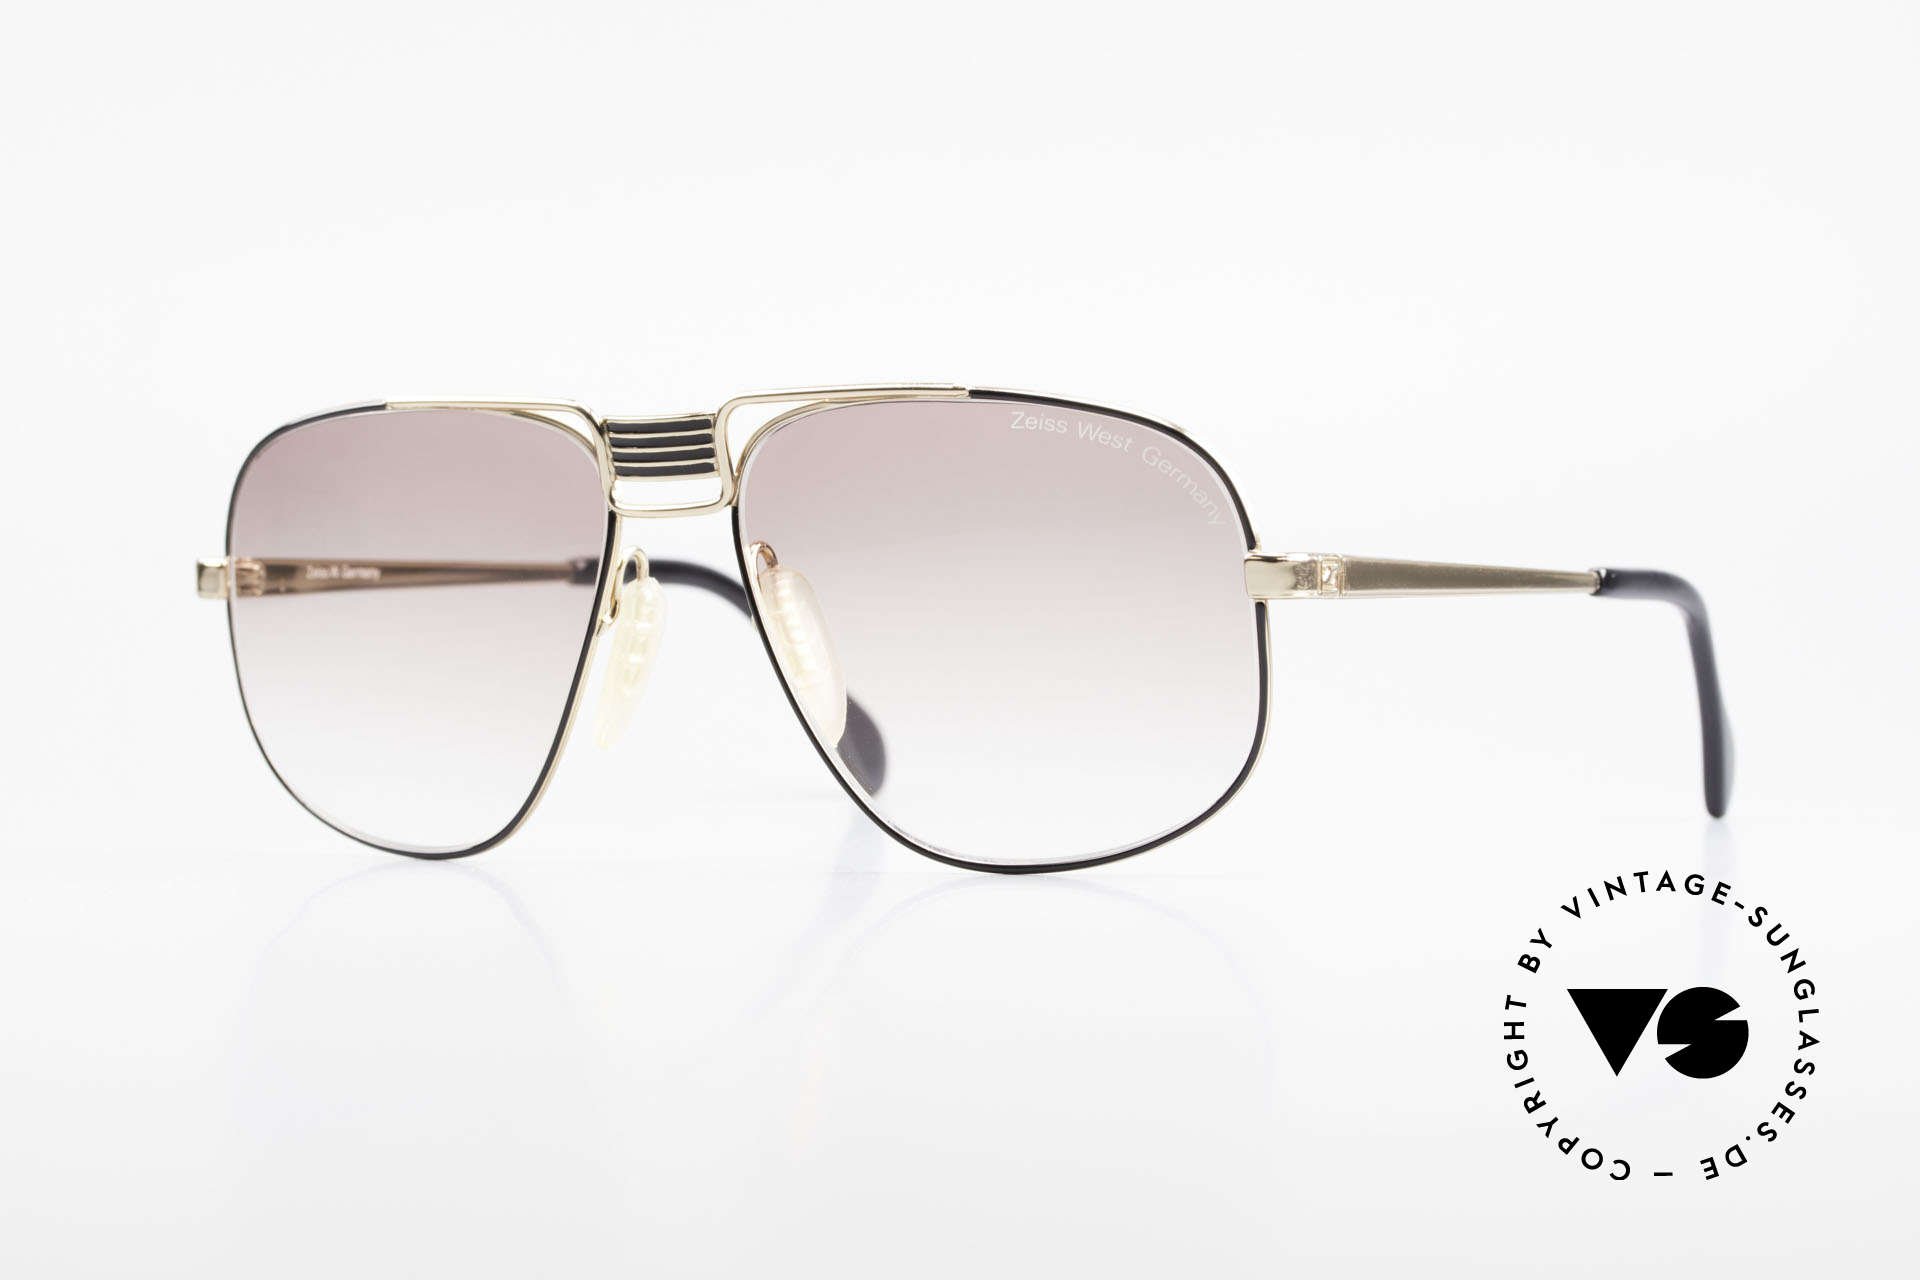 Zeiss 9387 X-Large 80's Men's Sunglasses, extraordinary 80's sunglasses by Zeiss, W.Germany, Made for Men